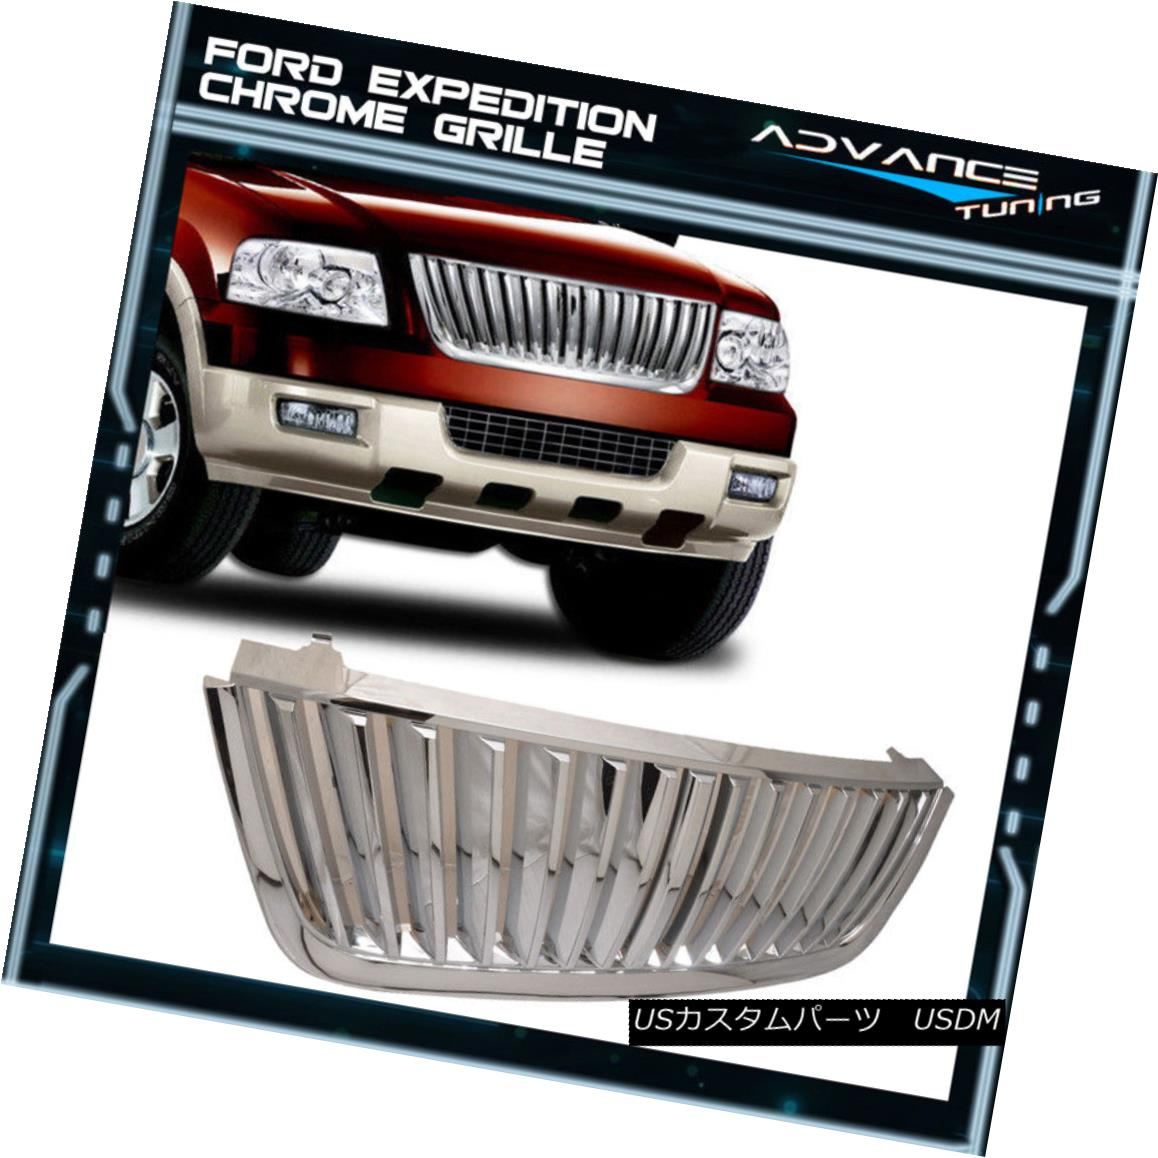 グリル For 03-06 Ford Expedition Upper Billet Grille Grill Chrome Brand New 03-06 Ford Expeditionアッパービレットグリルグリルクロム新品